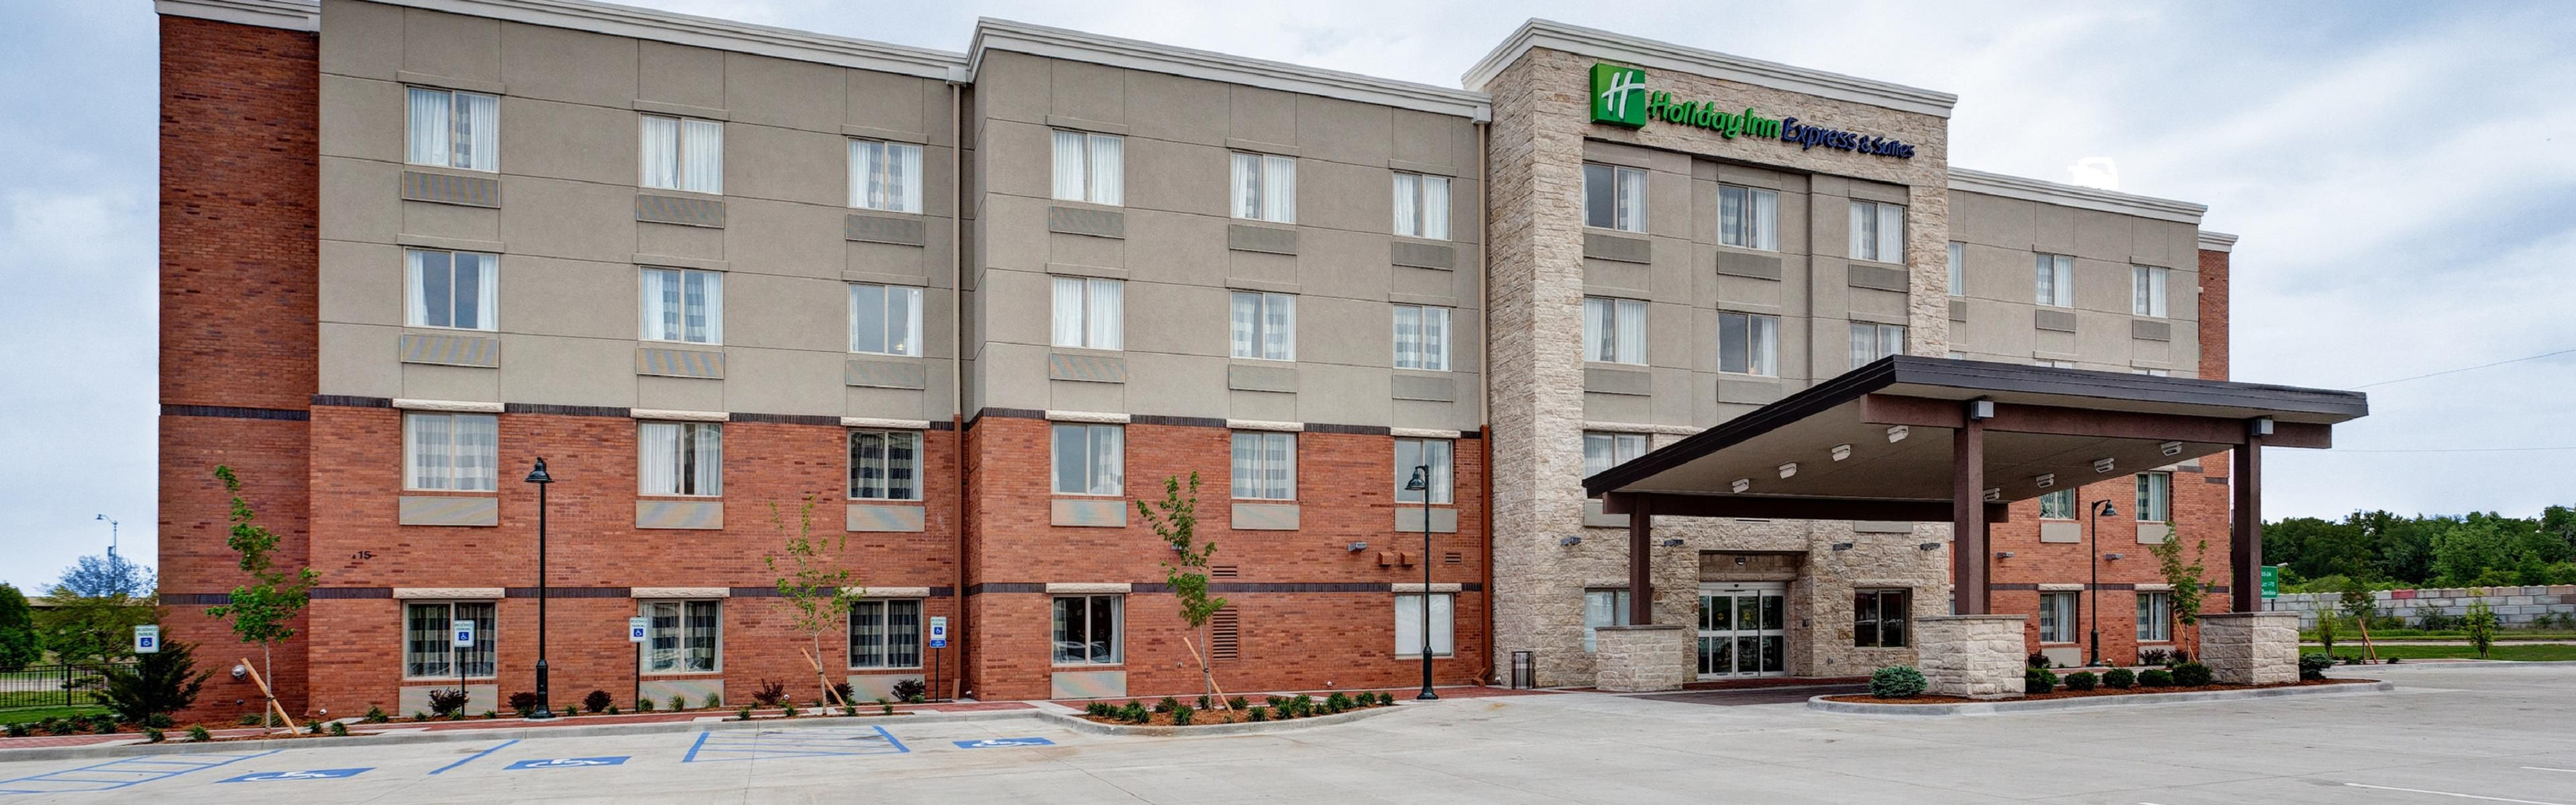 Holiday Inn Express & Suites GREAT BEND image 0